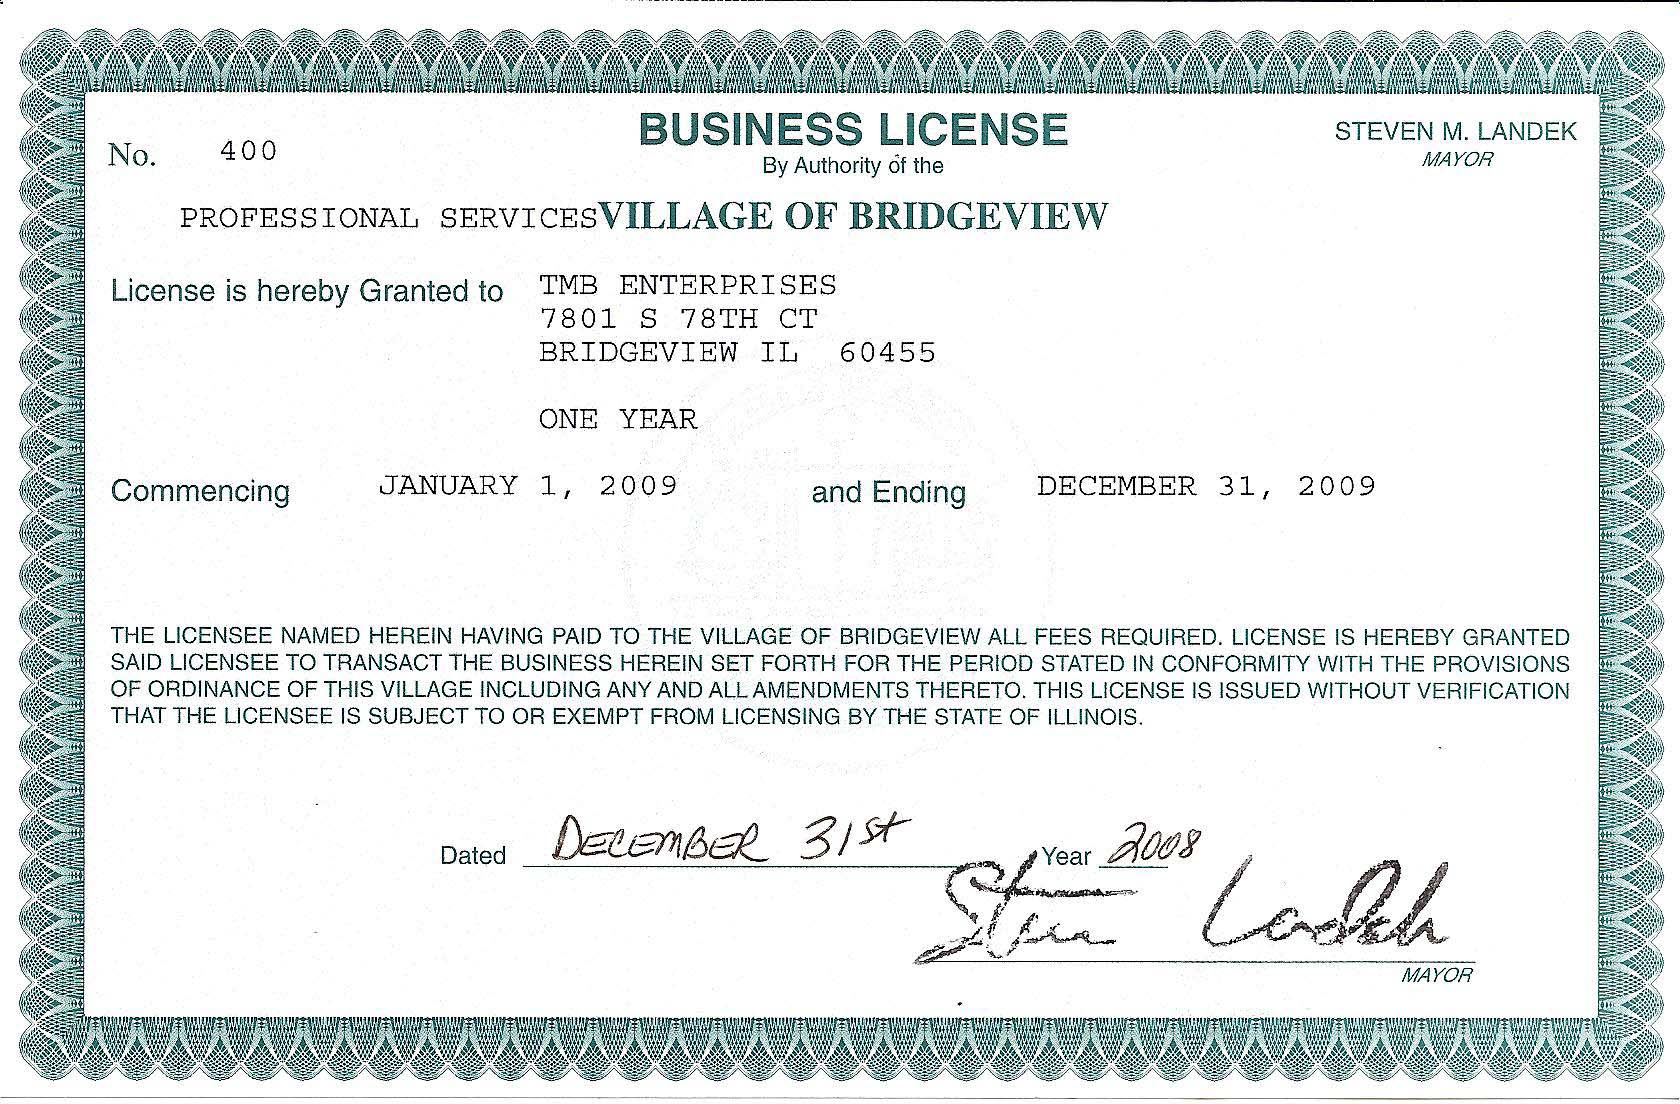 How To Get A Business License Online Apply For Business License How To Get A Business License In Ga Online Business License How To Get Your Business License Applying For Business License Texas Purchase A Business License